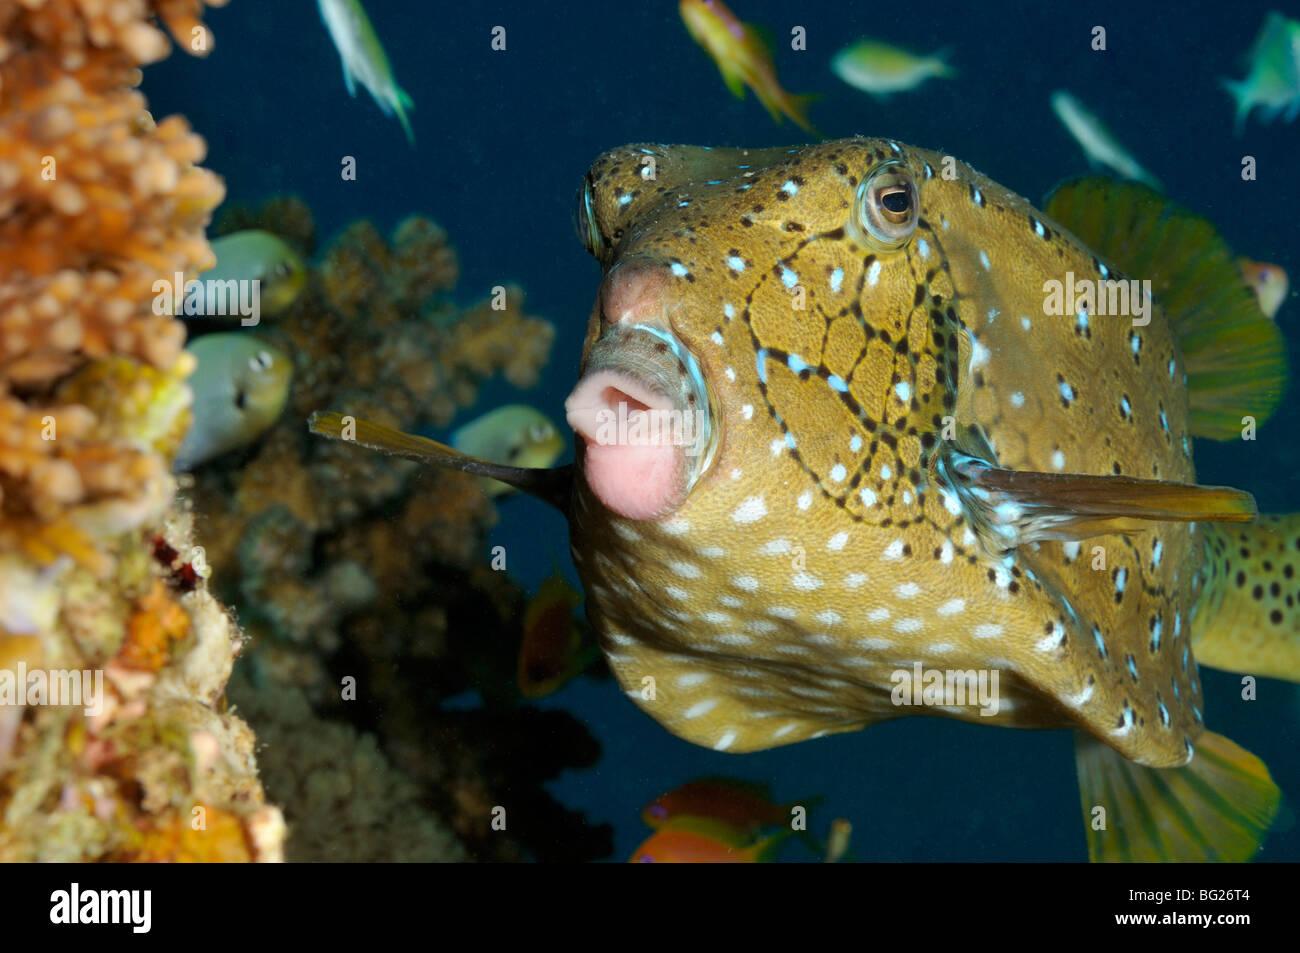 Yellow boxfish, Ostracion cubicus, fish on coral reef - Stock Image